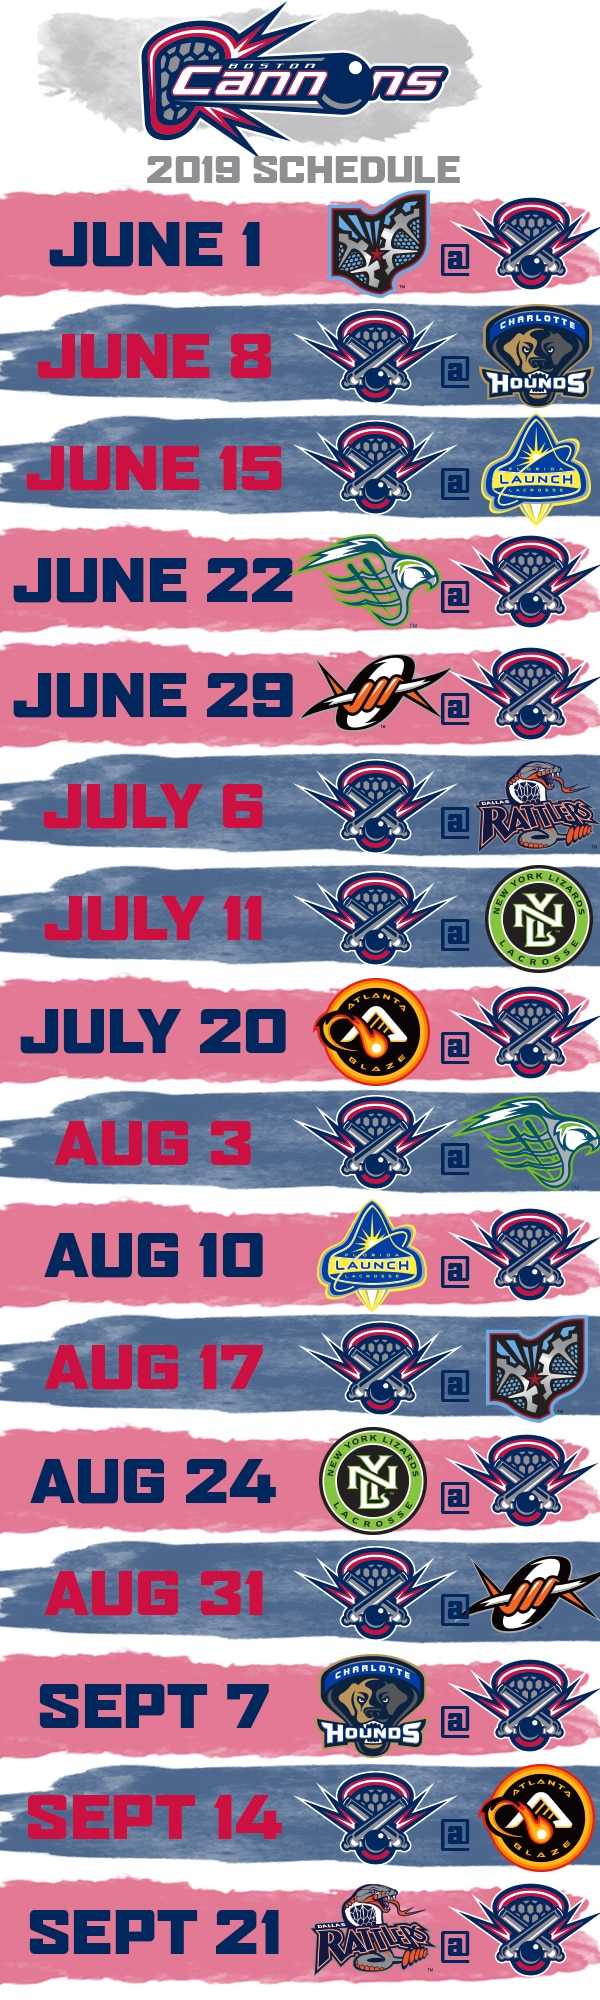 2019 Cannons Schedule